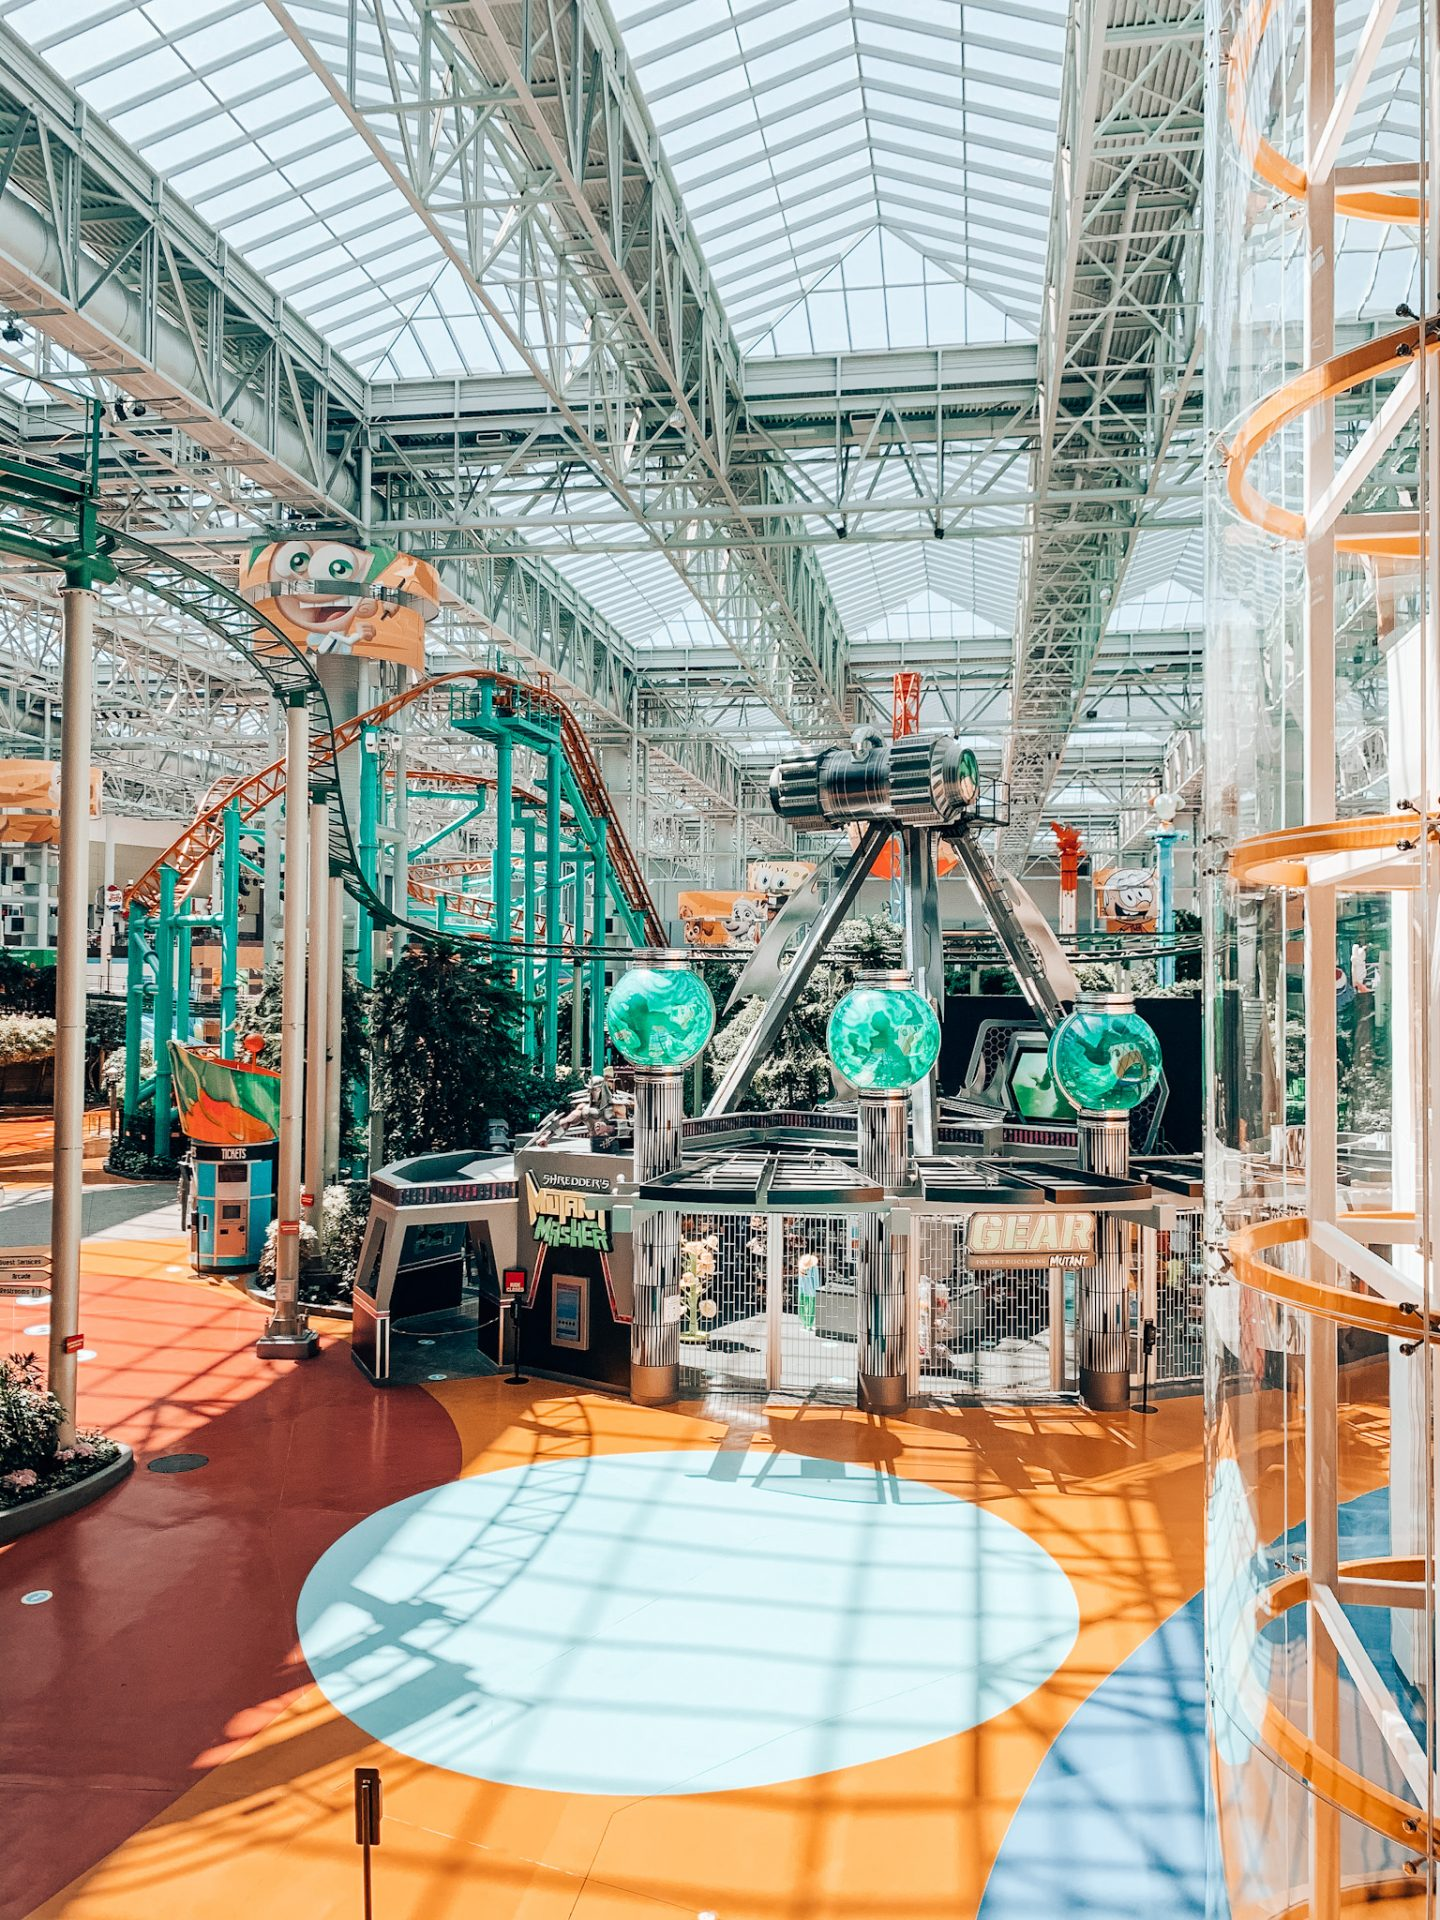 The Mall of America in Bloomington is one of the top things to do in Minneapolis